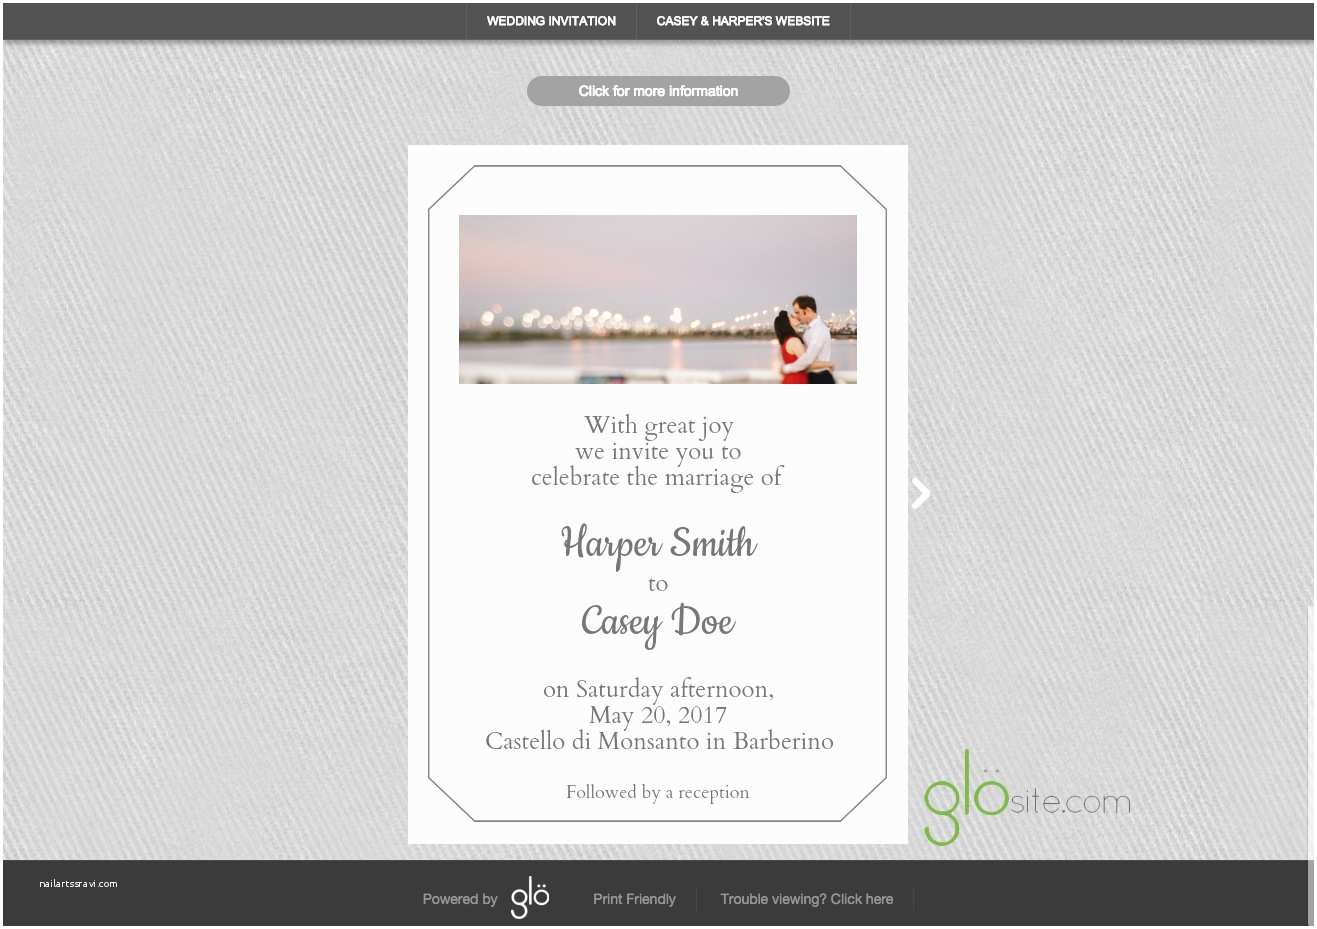 Email Wedding Shower Invitations New Email Wedding Invitations Design Template Features